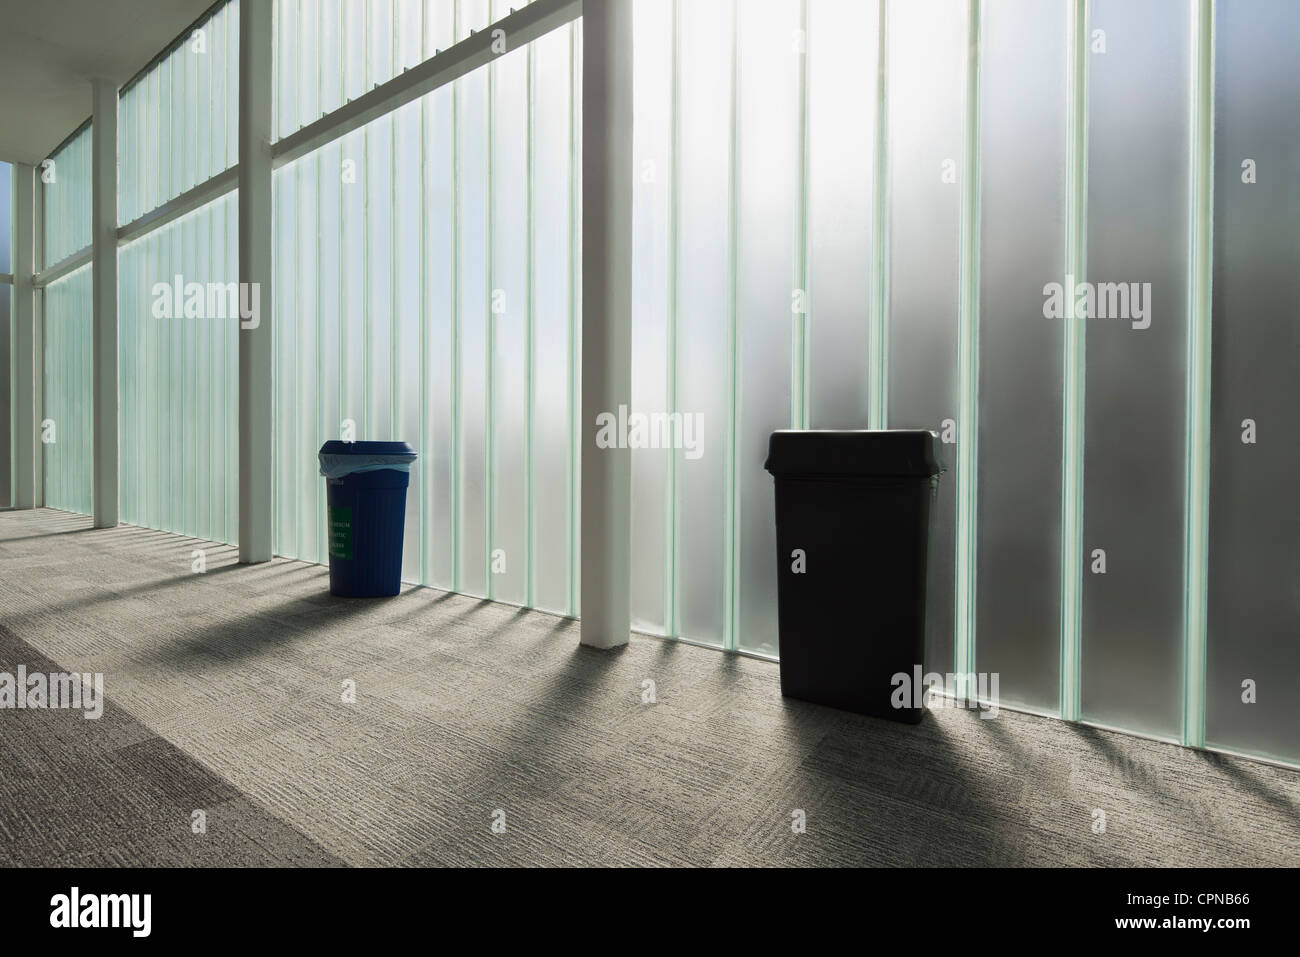 Modern lobby with glass wall - Stock Image